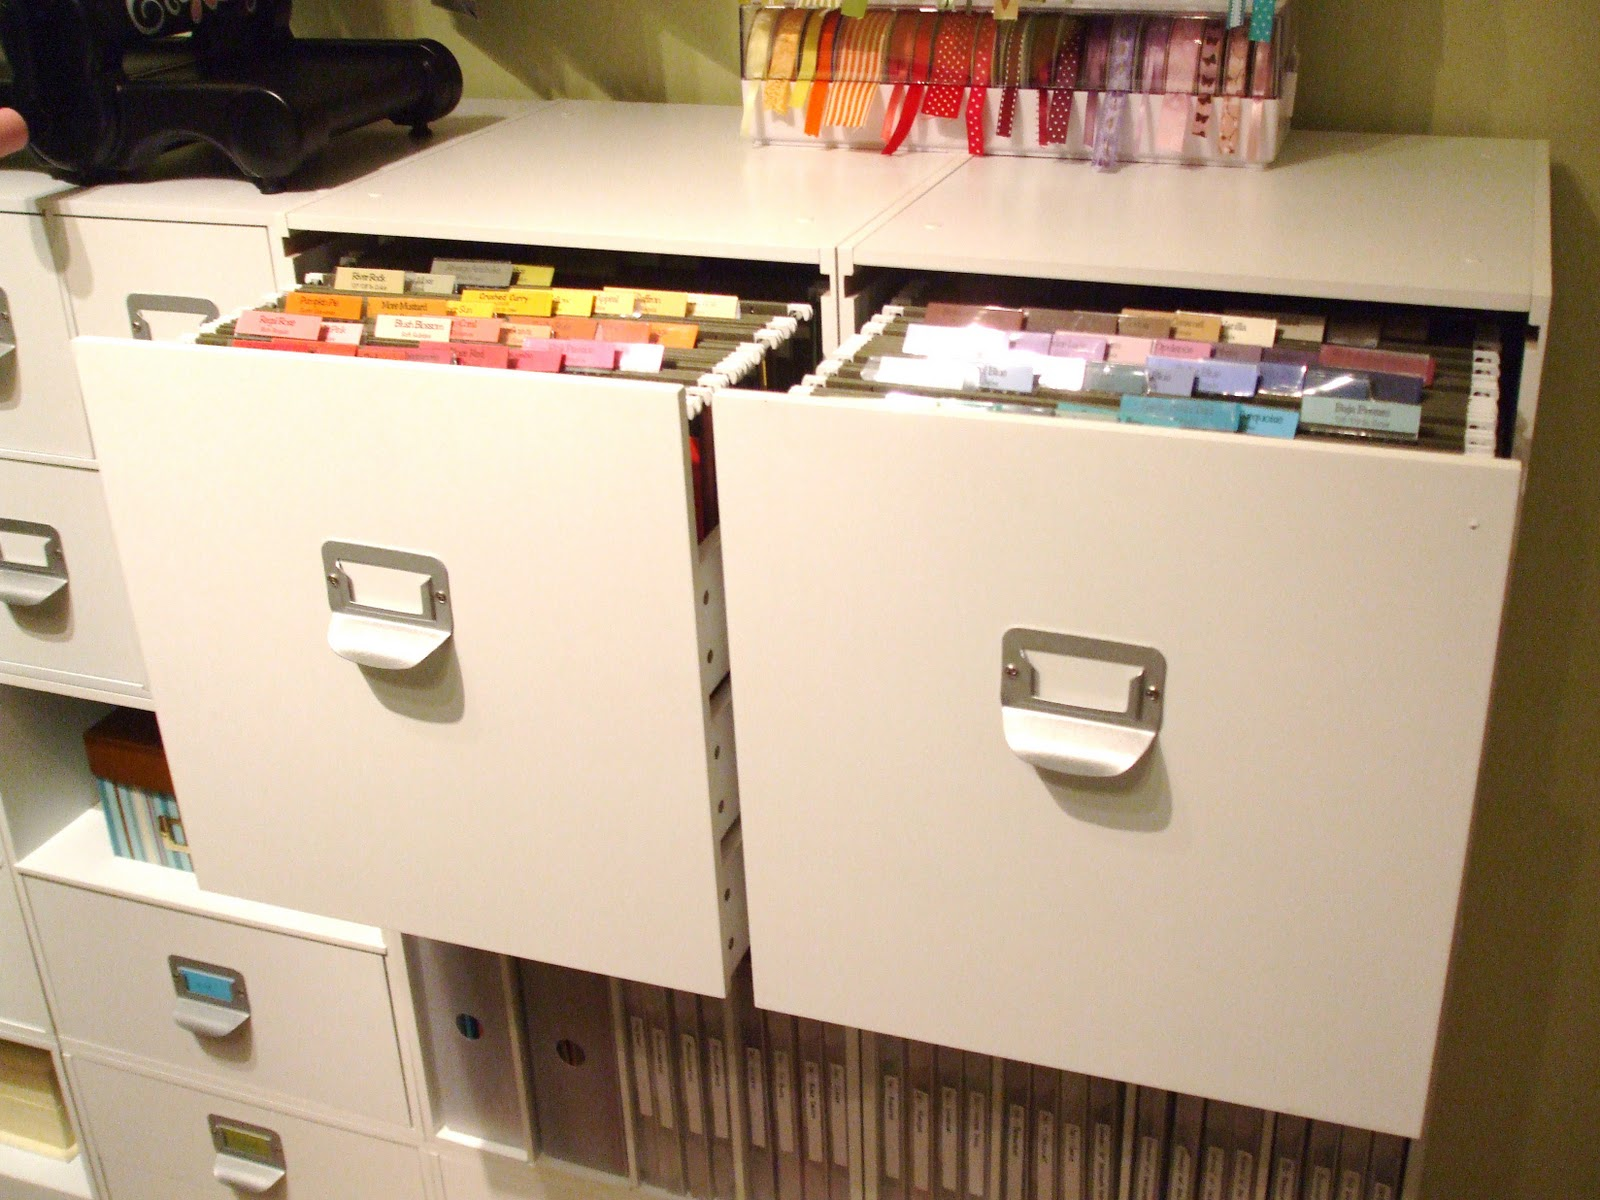 Excellent All About the Furniture: File Cabinets - Craft Storage Ideas XI89